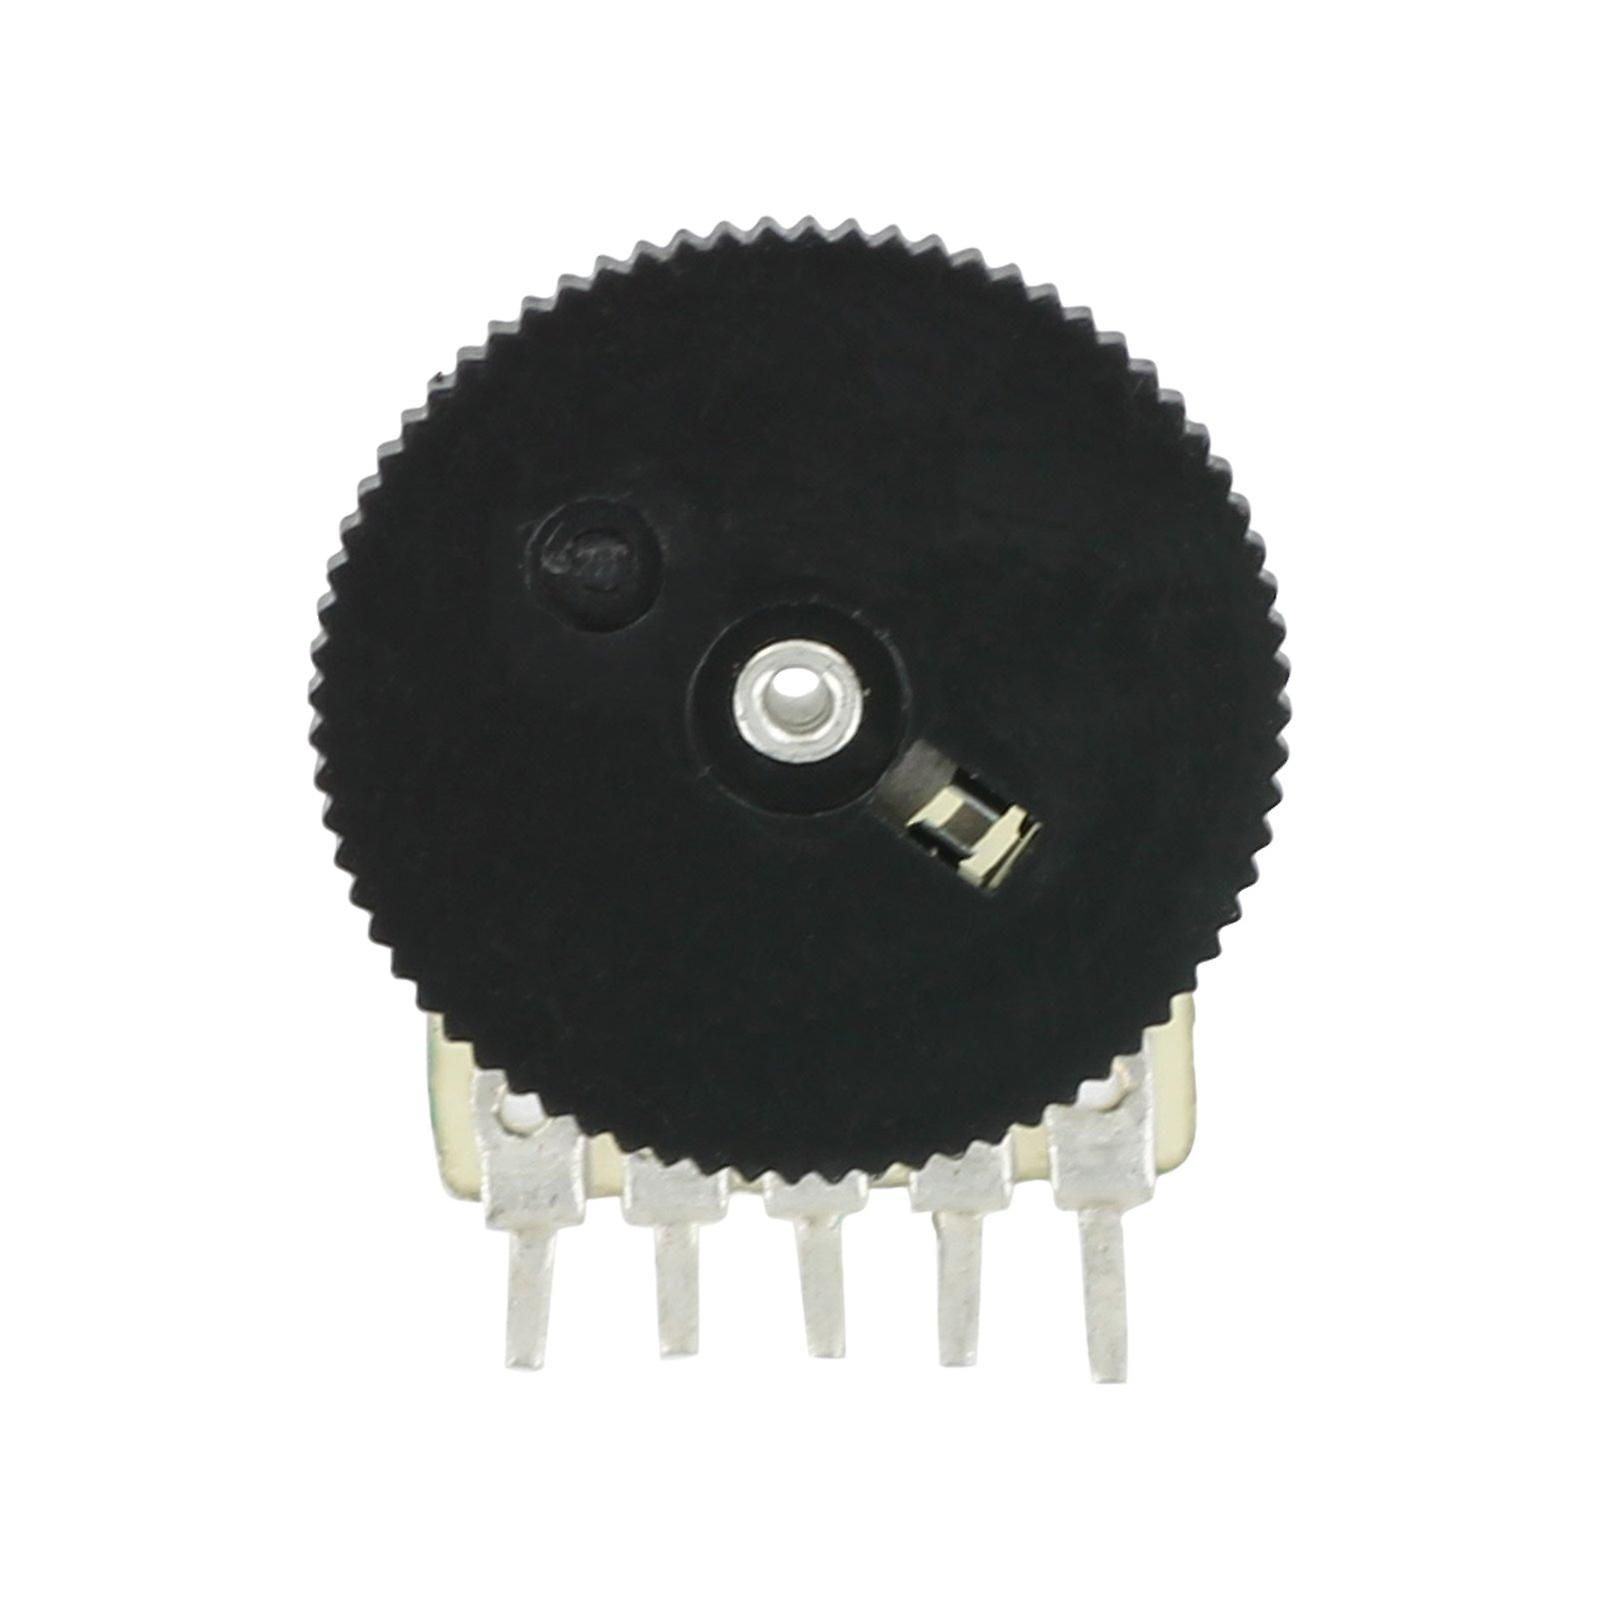 Replacement volume wheel potentiometer for nintendo gameboy advance gba & color gbc